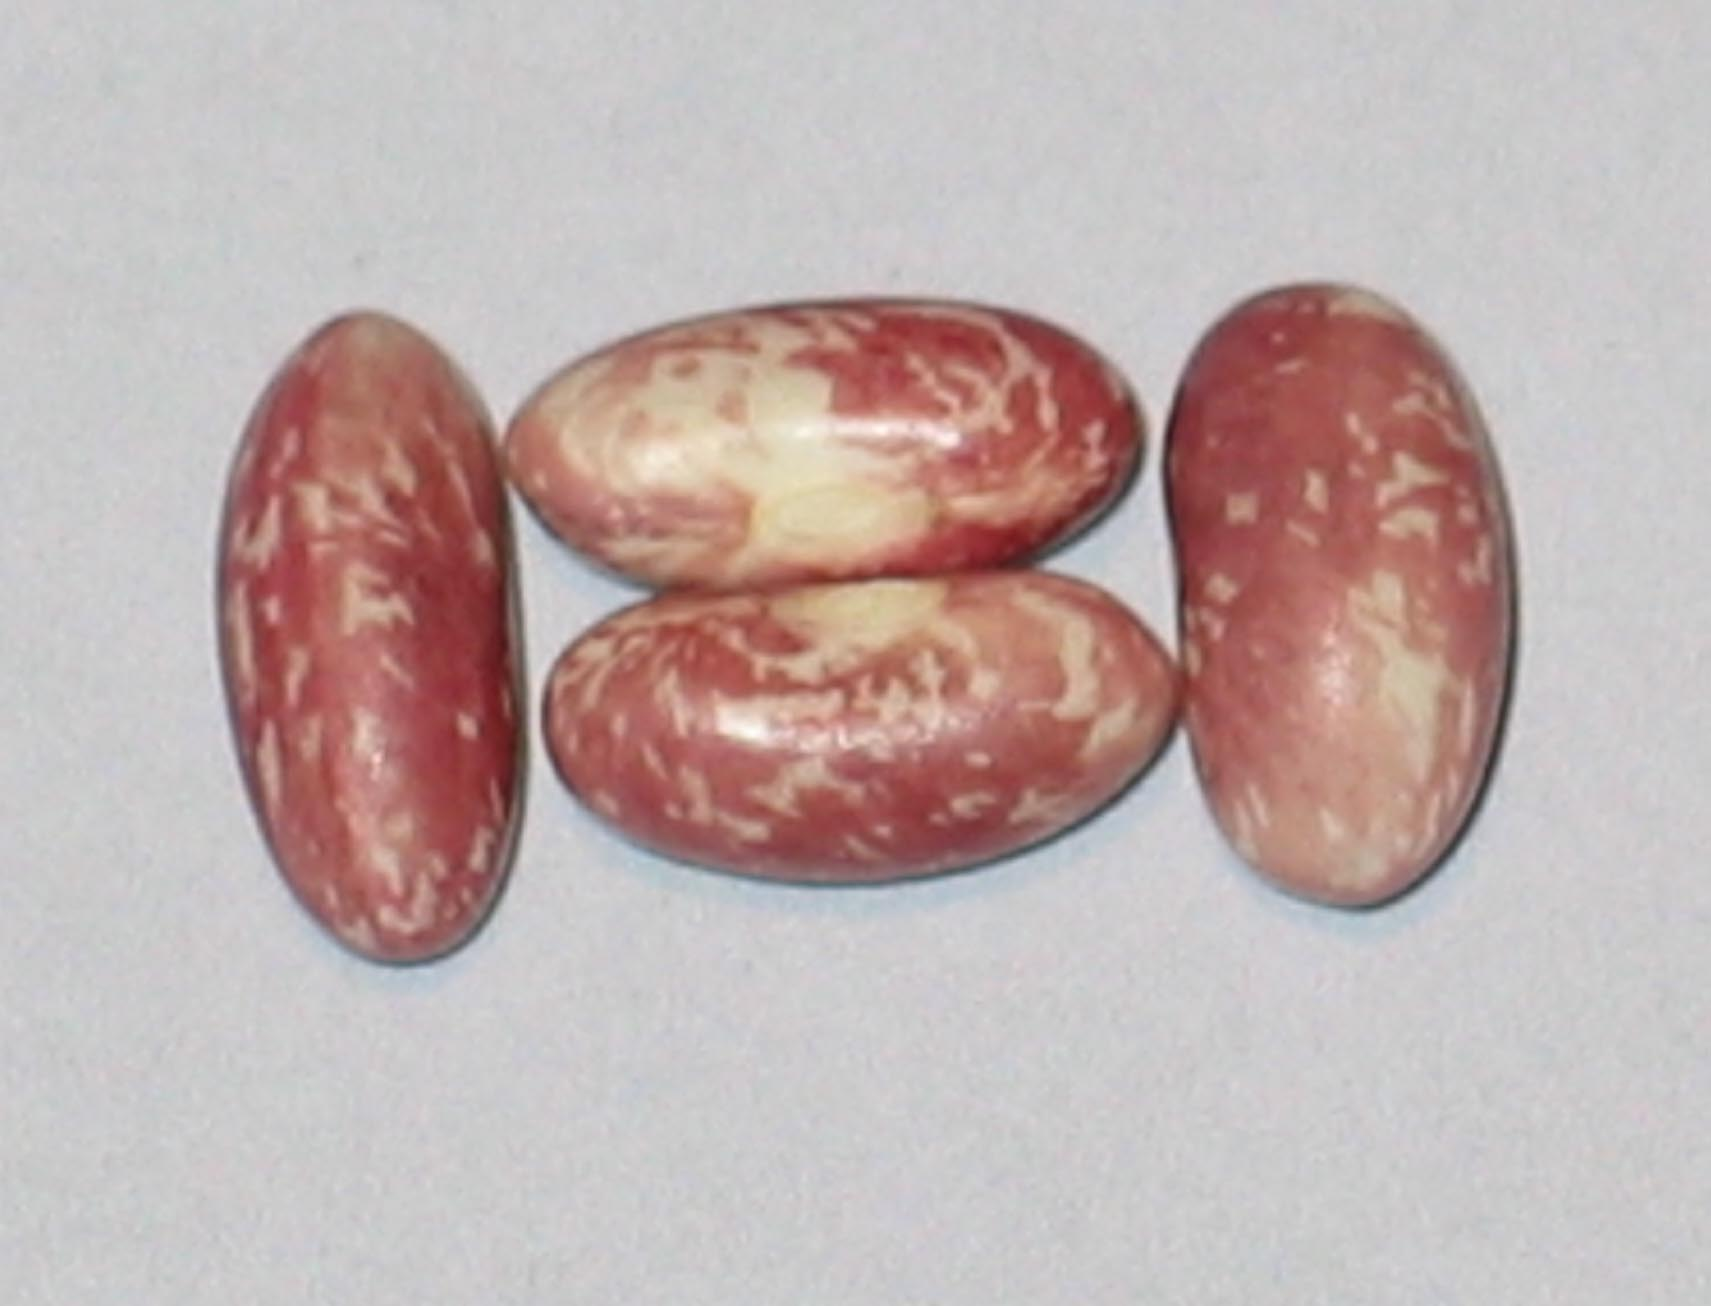 image of Conserva beans